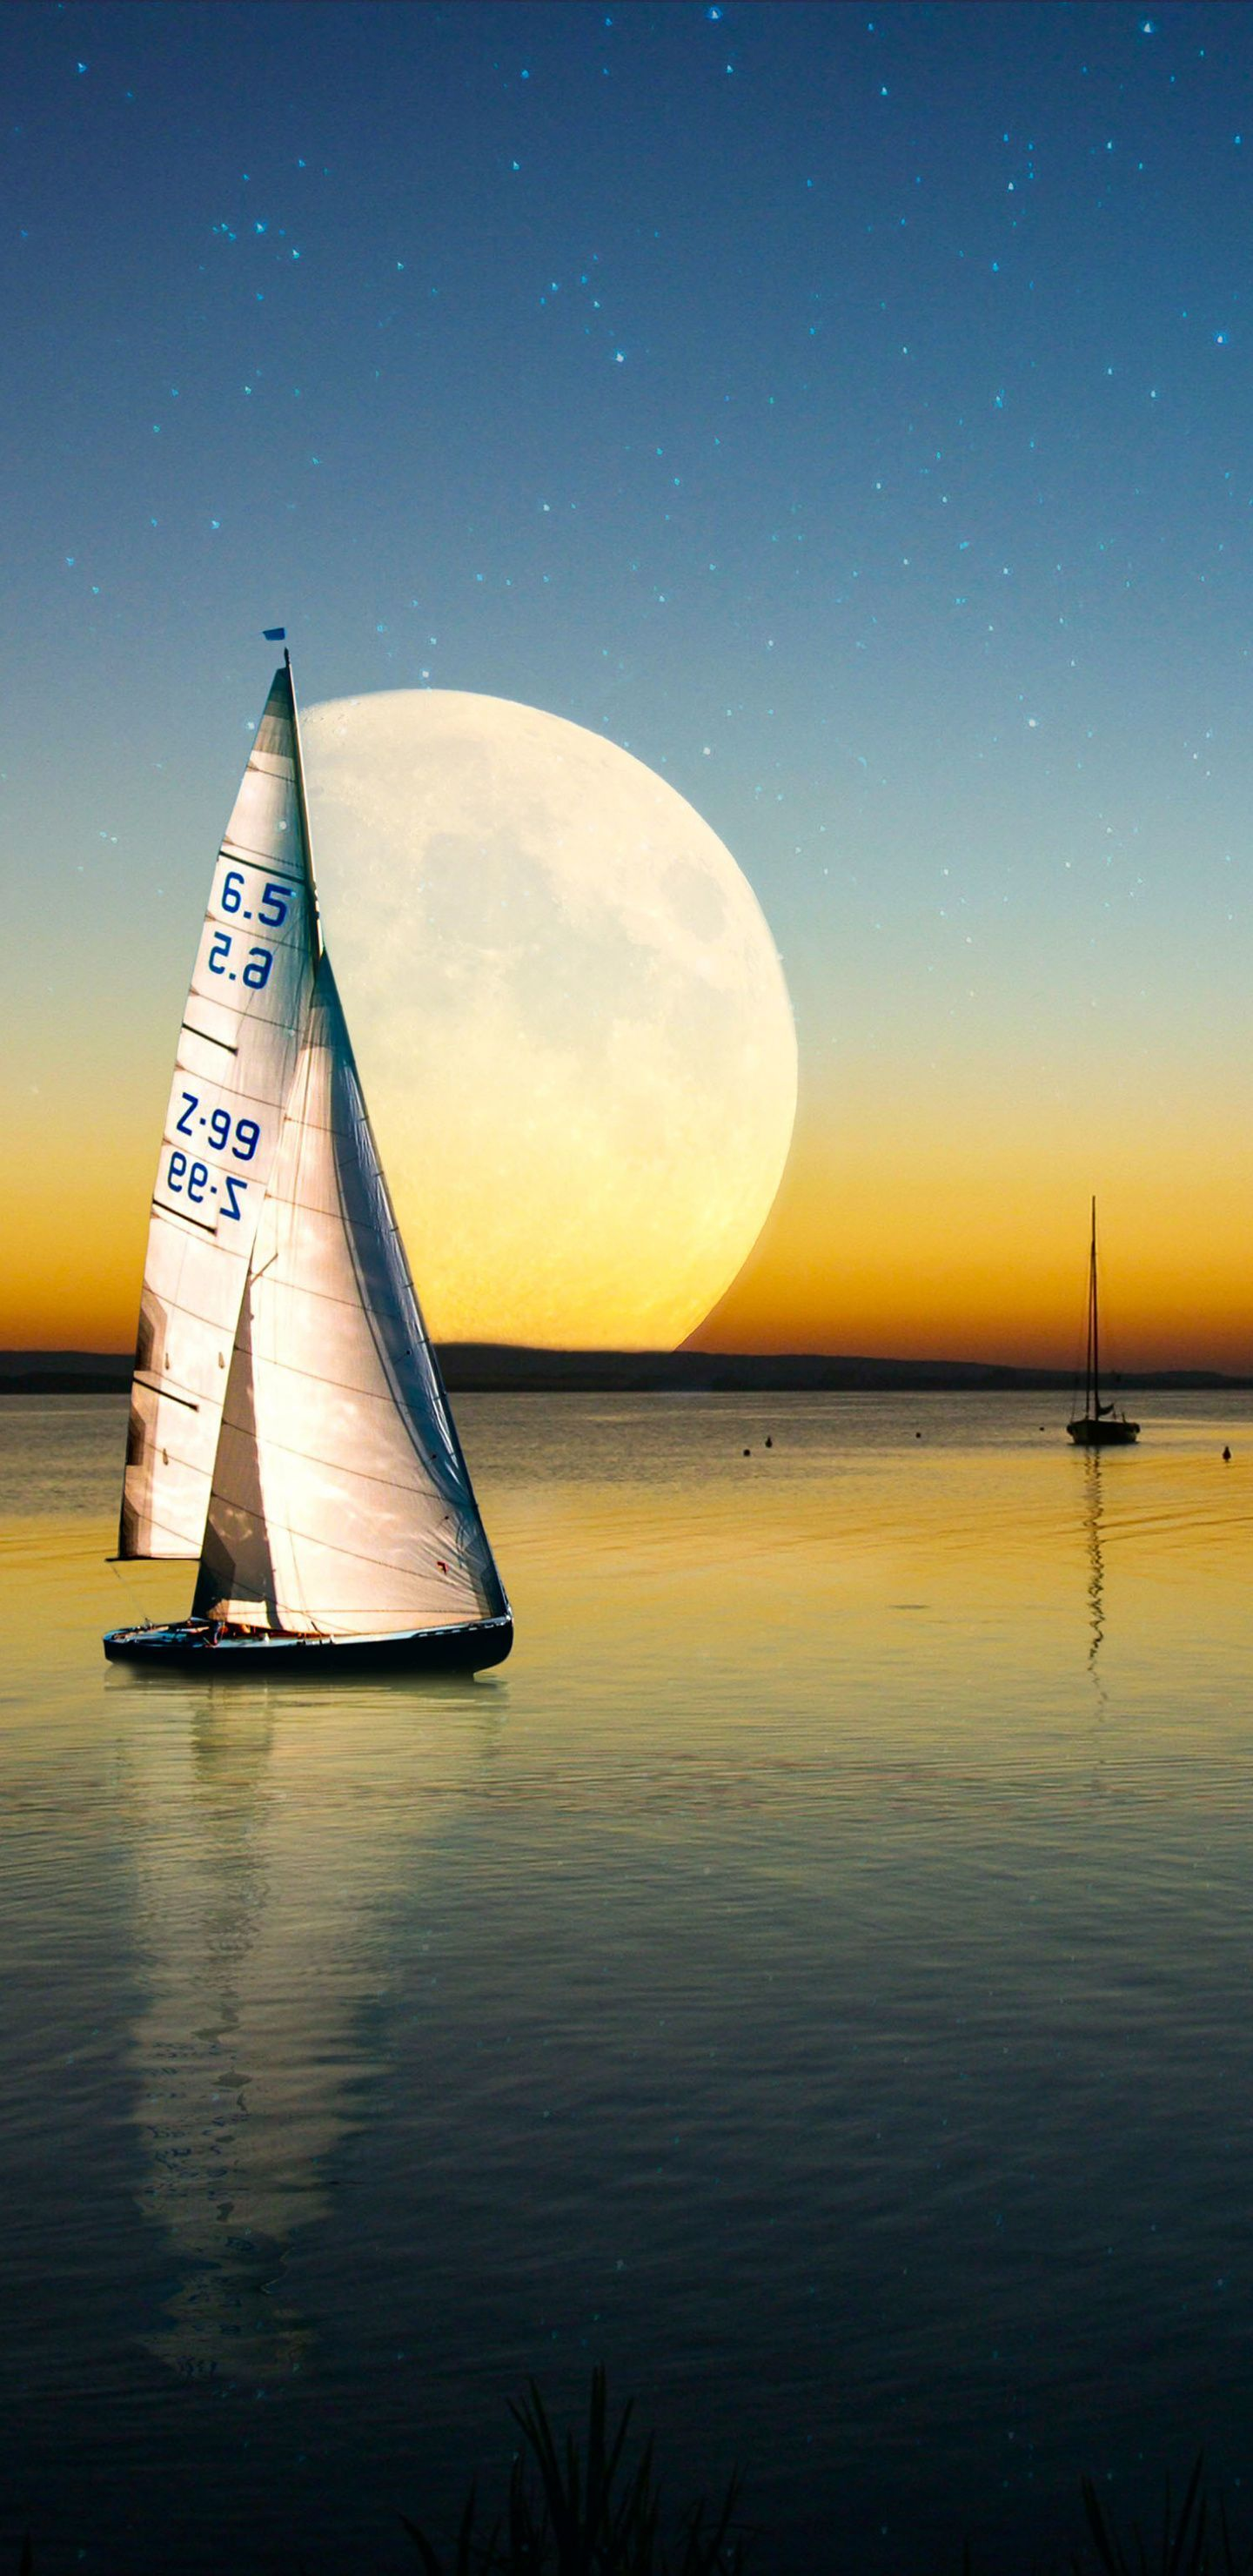 1440x2960 Moon, sailing boat, sea, sunset wallpapers